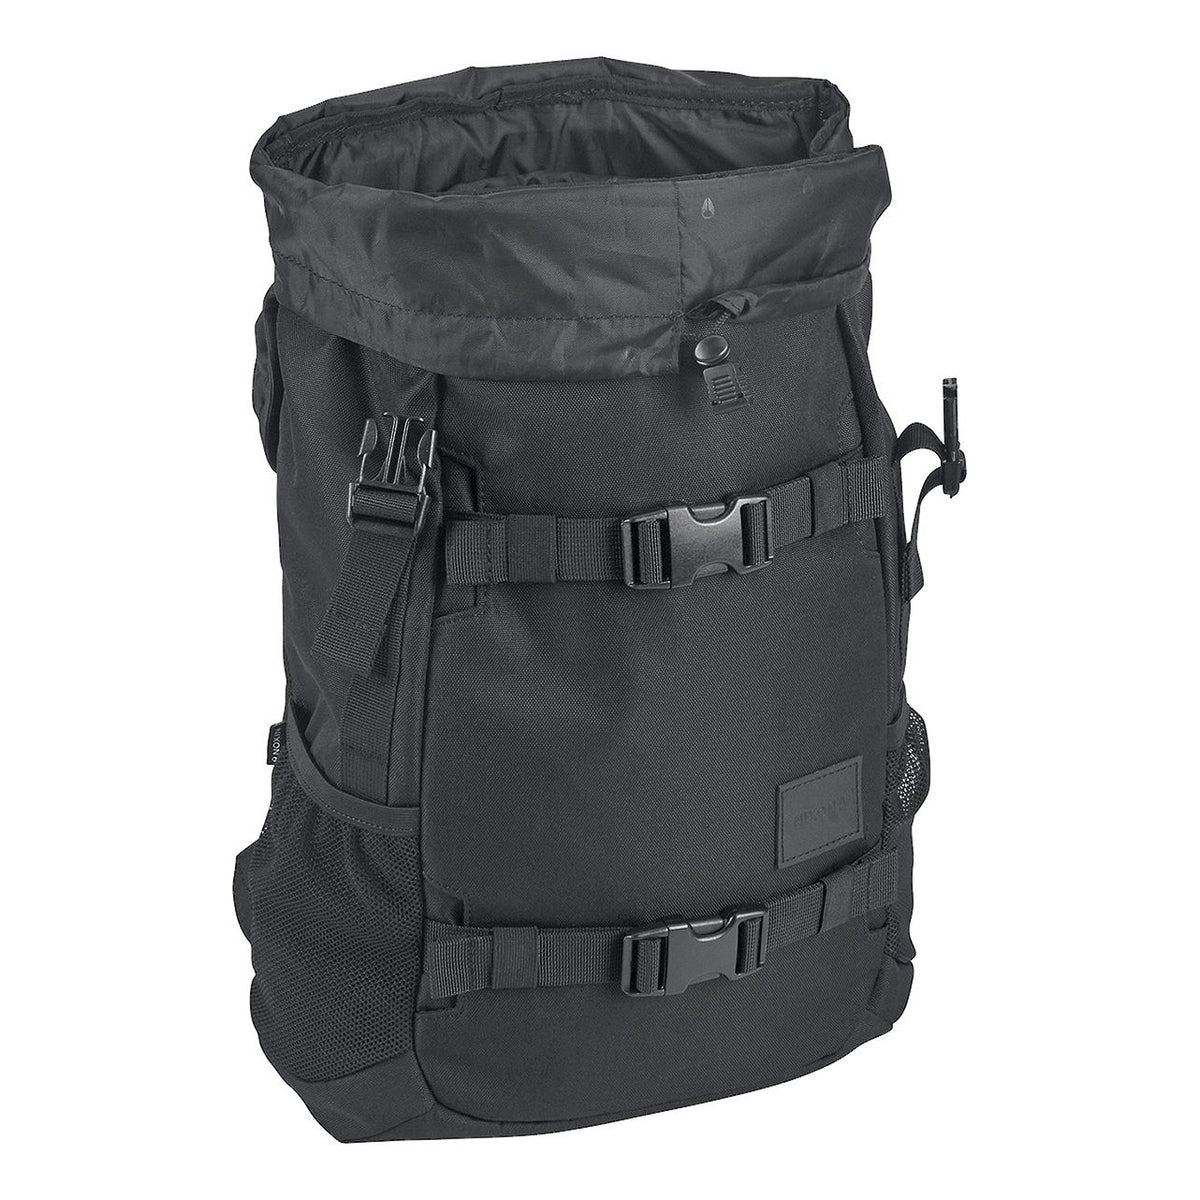 Nixon: Landlock Backpack SE - All Black